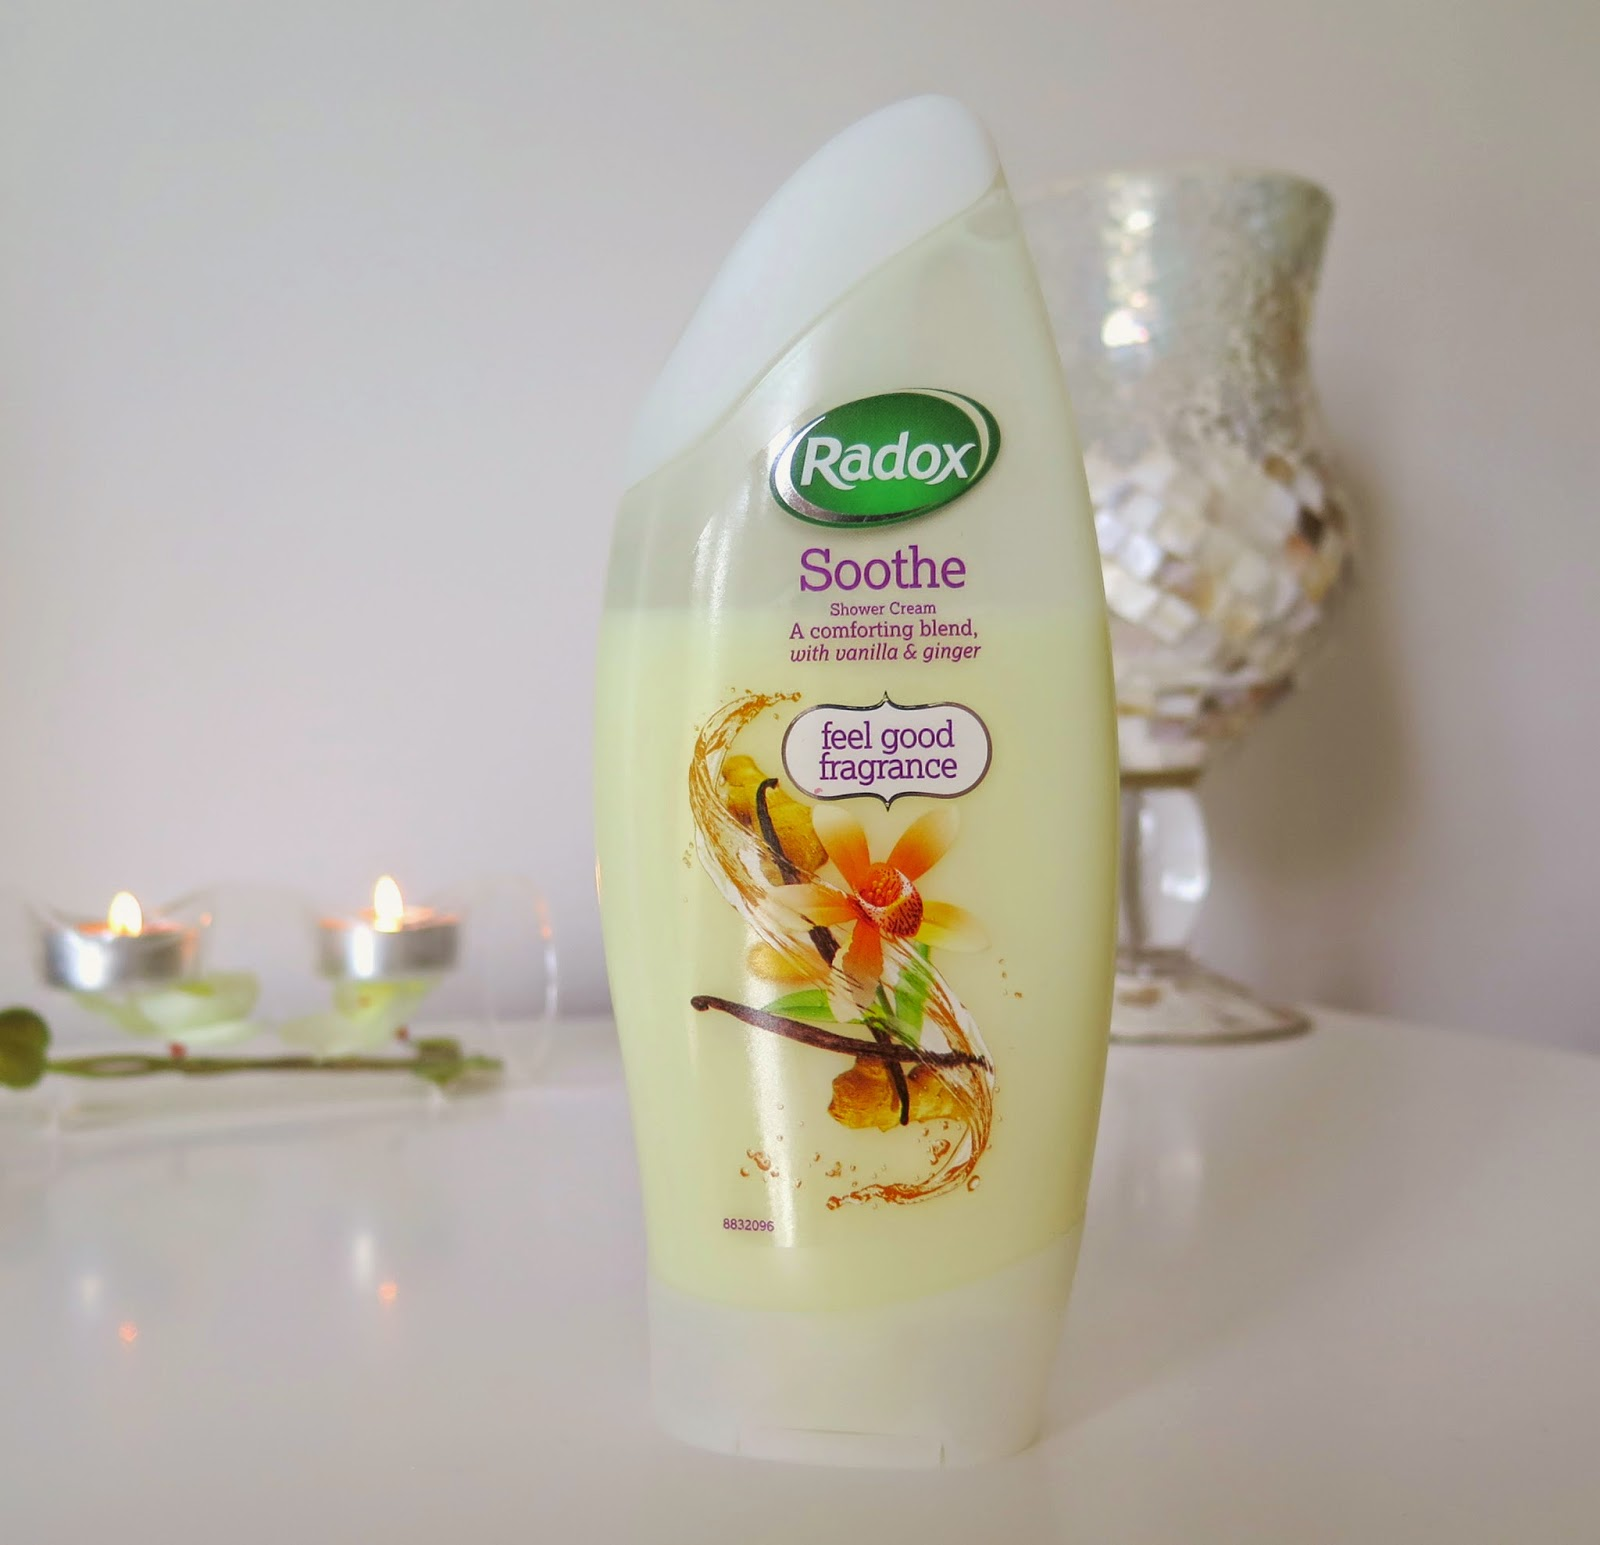 Radox soothe shower gel